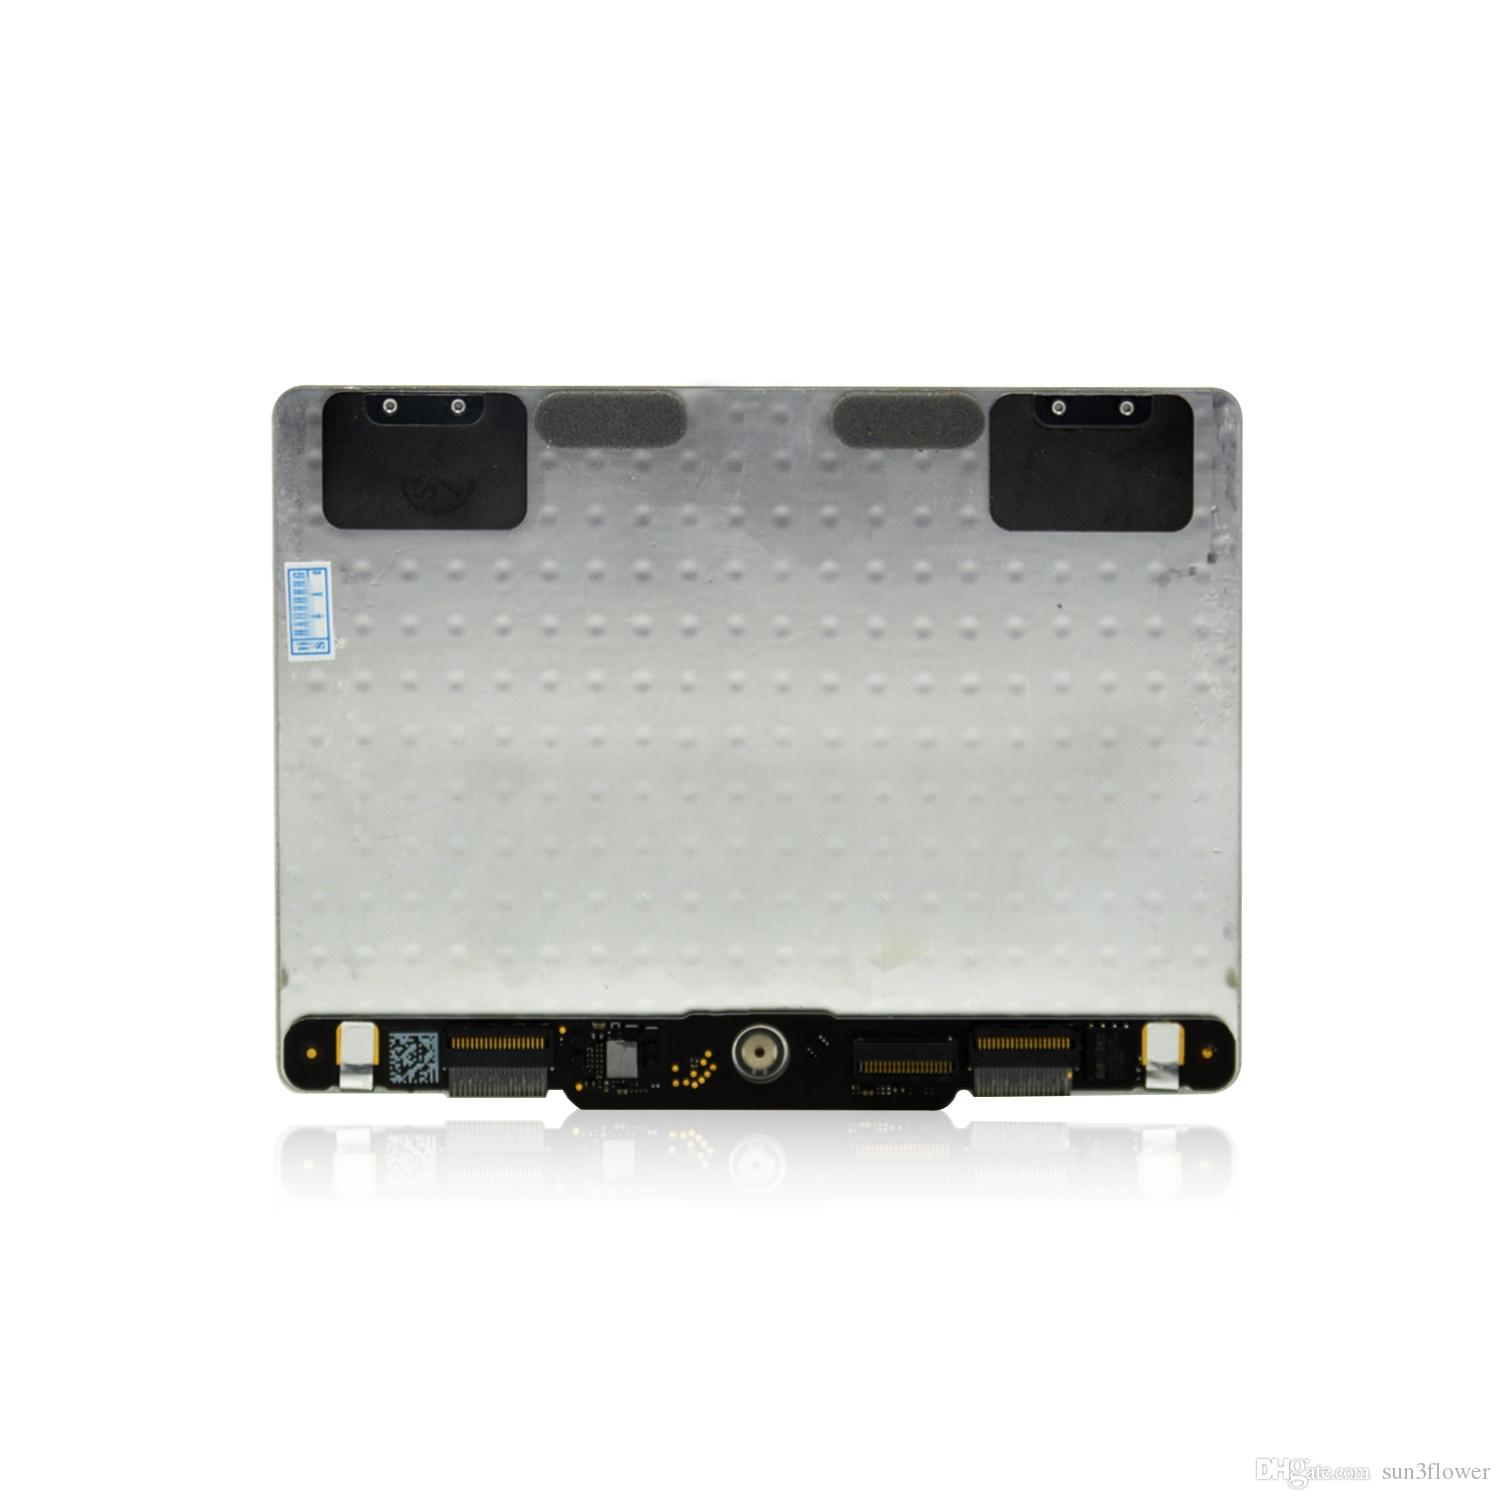 100% Tested Genuine 595-1577 593-1577-04 593-1577-B Touch Panel Touchpad Trackpad For Macbook Pro Retina 13'' A1425 2012 Year MD212 MD213